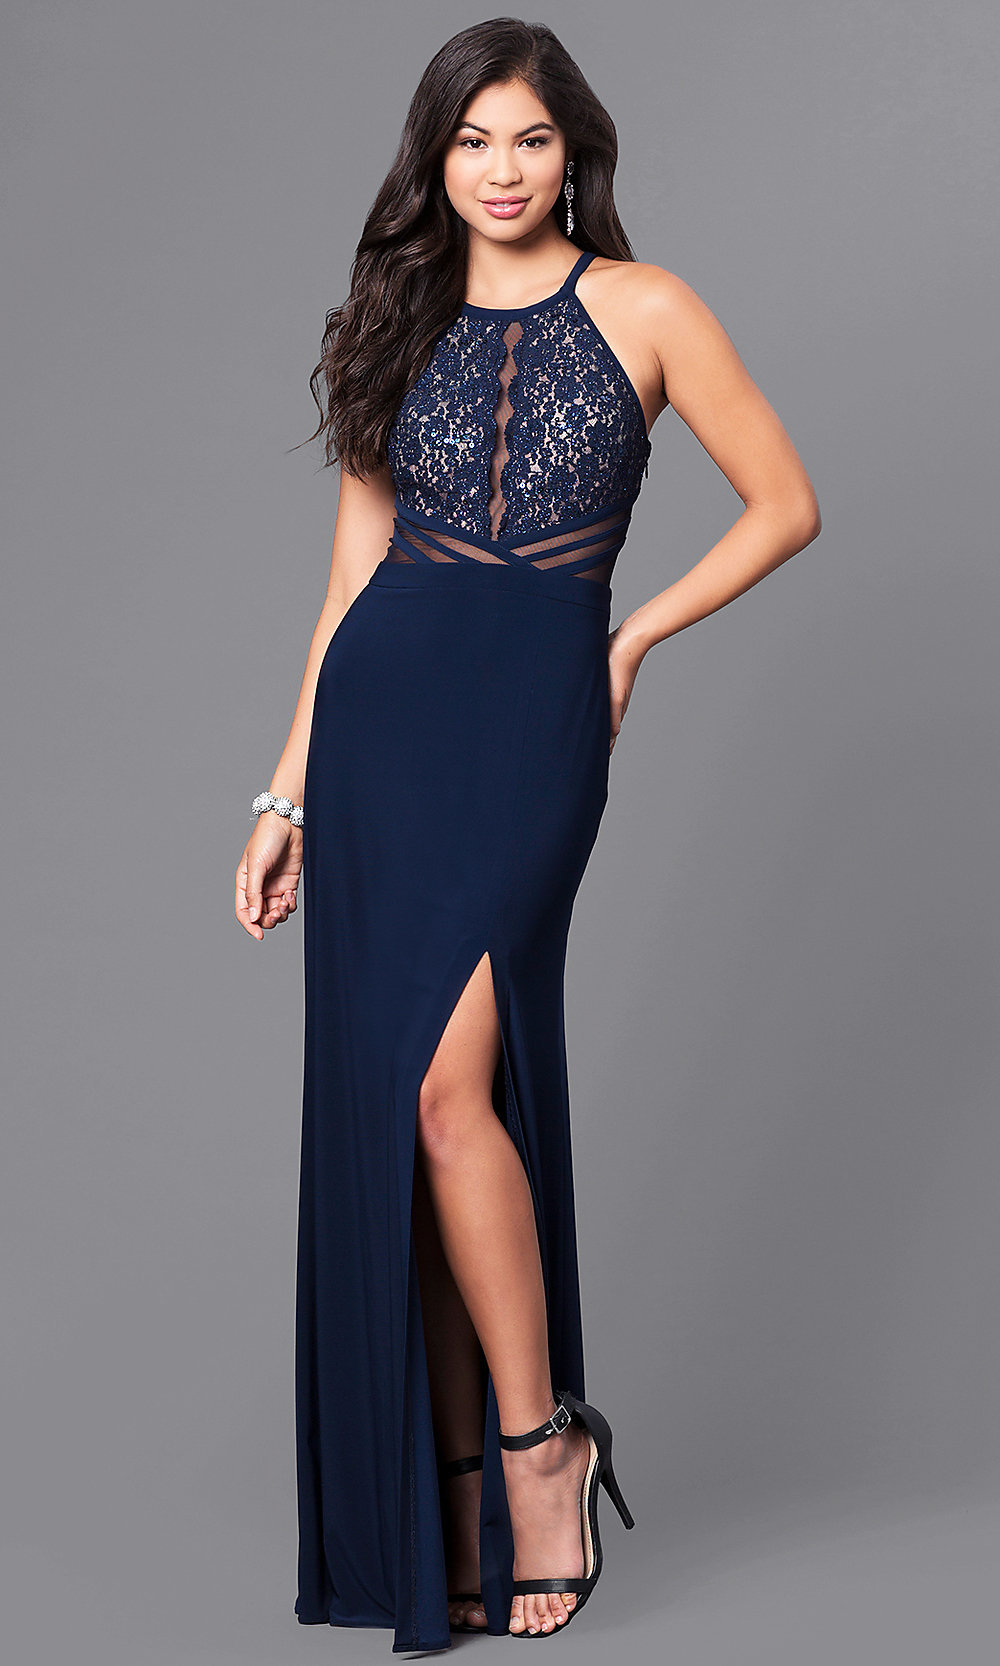 Sequined-Lace Bodice Long Blue Prom Dress - PromGirl